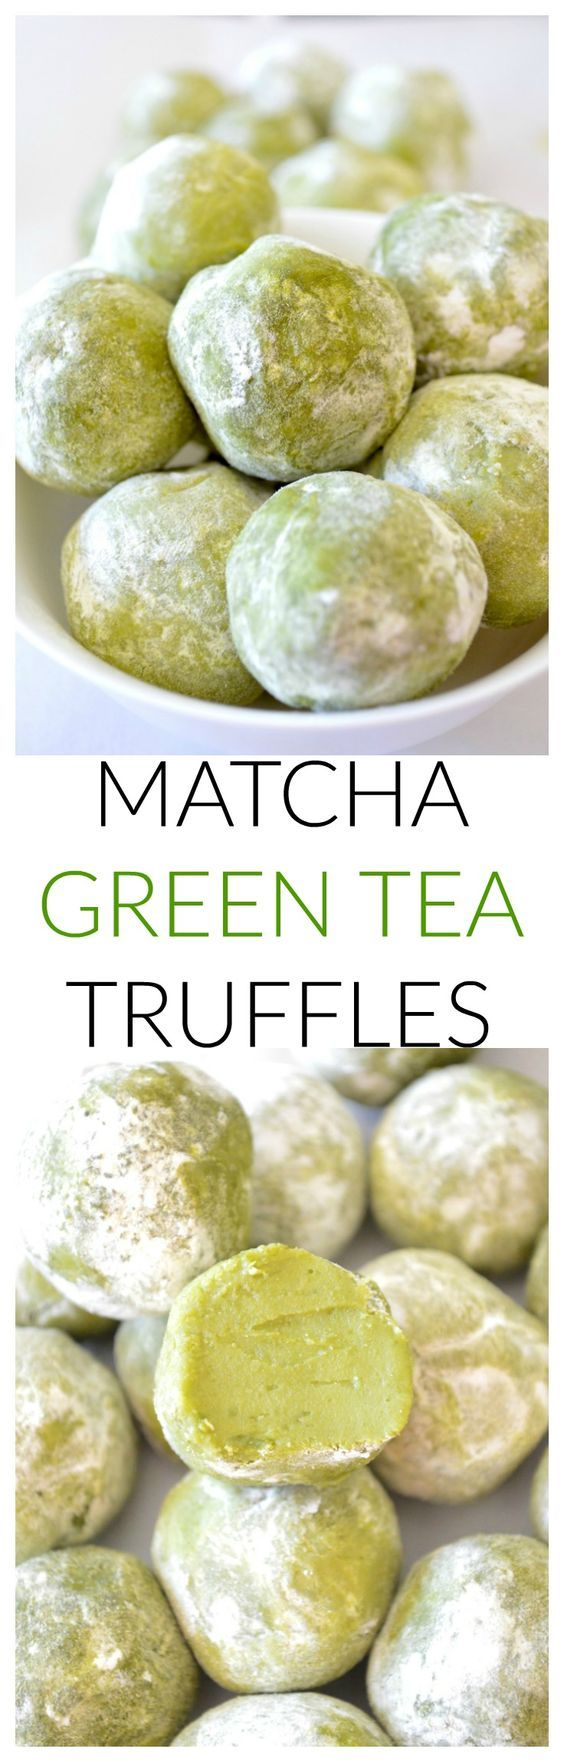 These 5 ingredient matcha green tea truffles are sweet, rich, and delicate green tea flavored chocolate treats!: